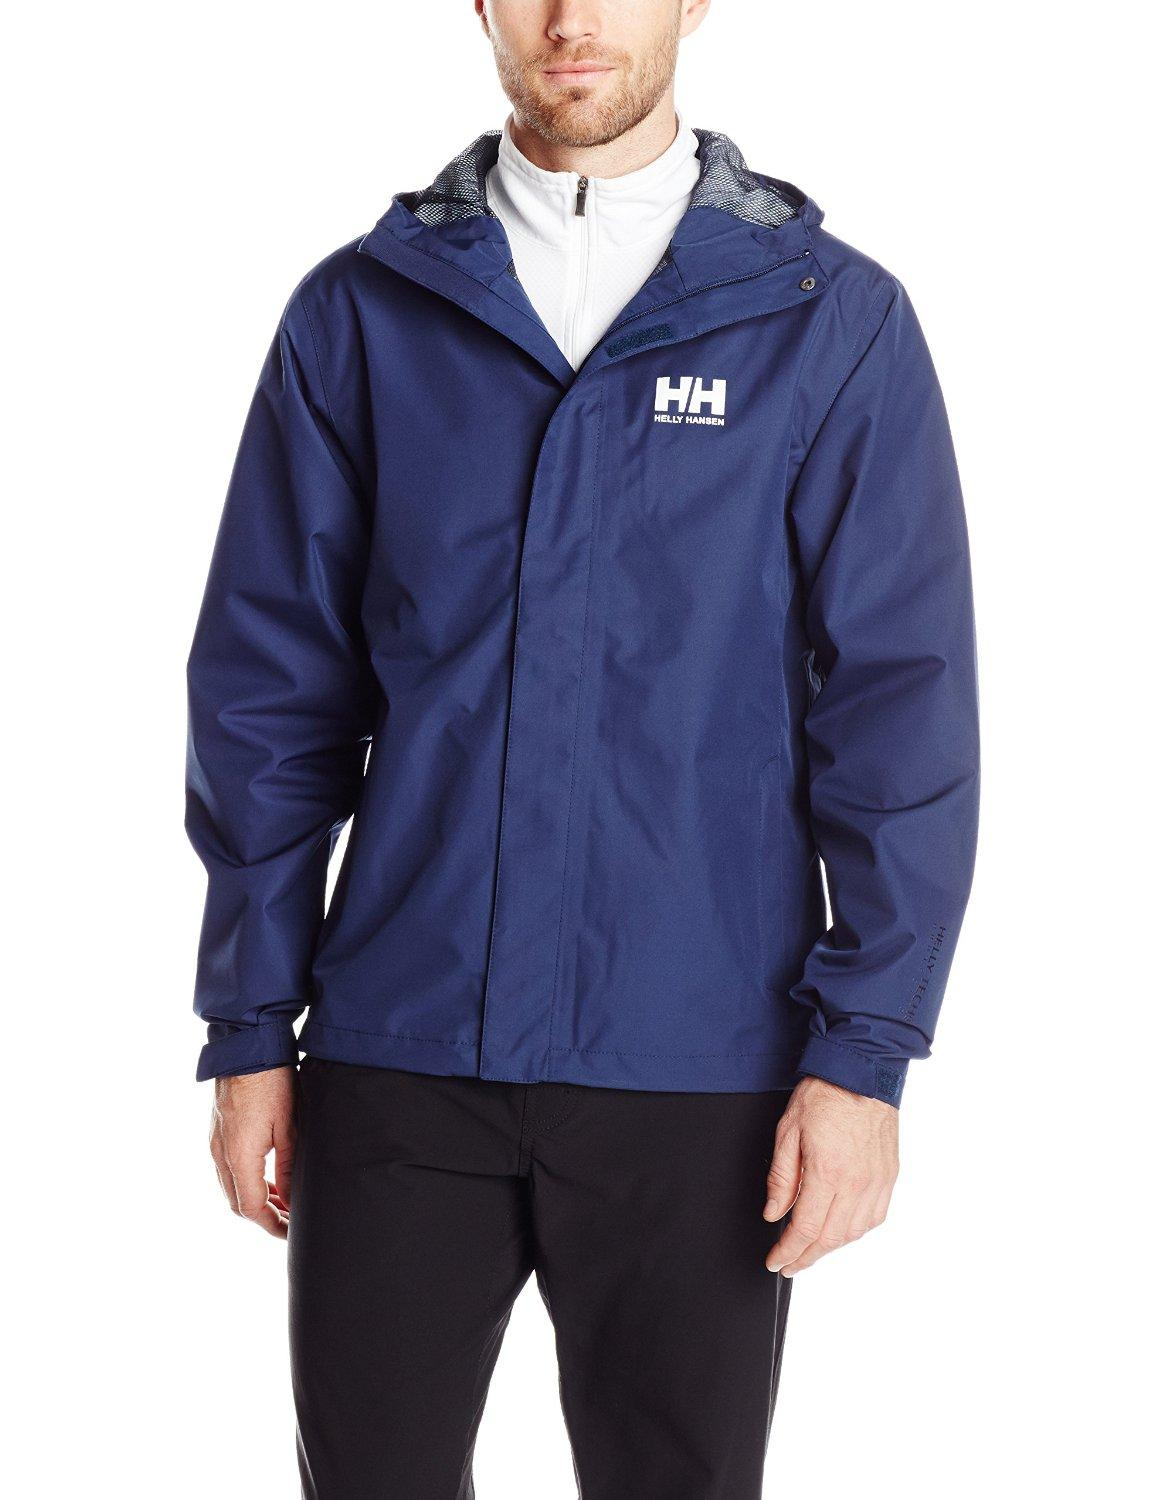 $50.72 Helly Hansen Men's Seven J Rain Jacket